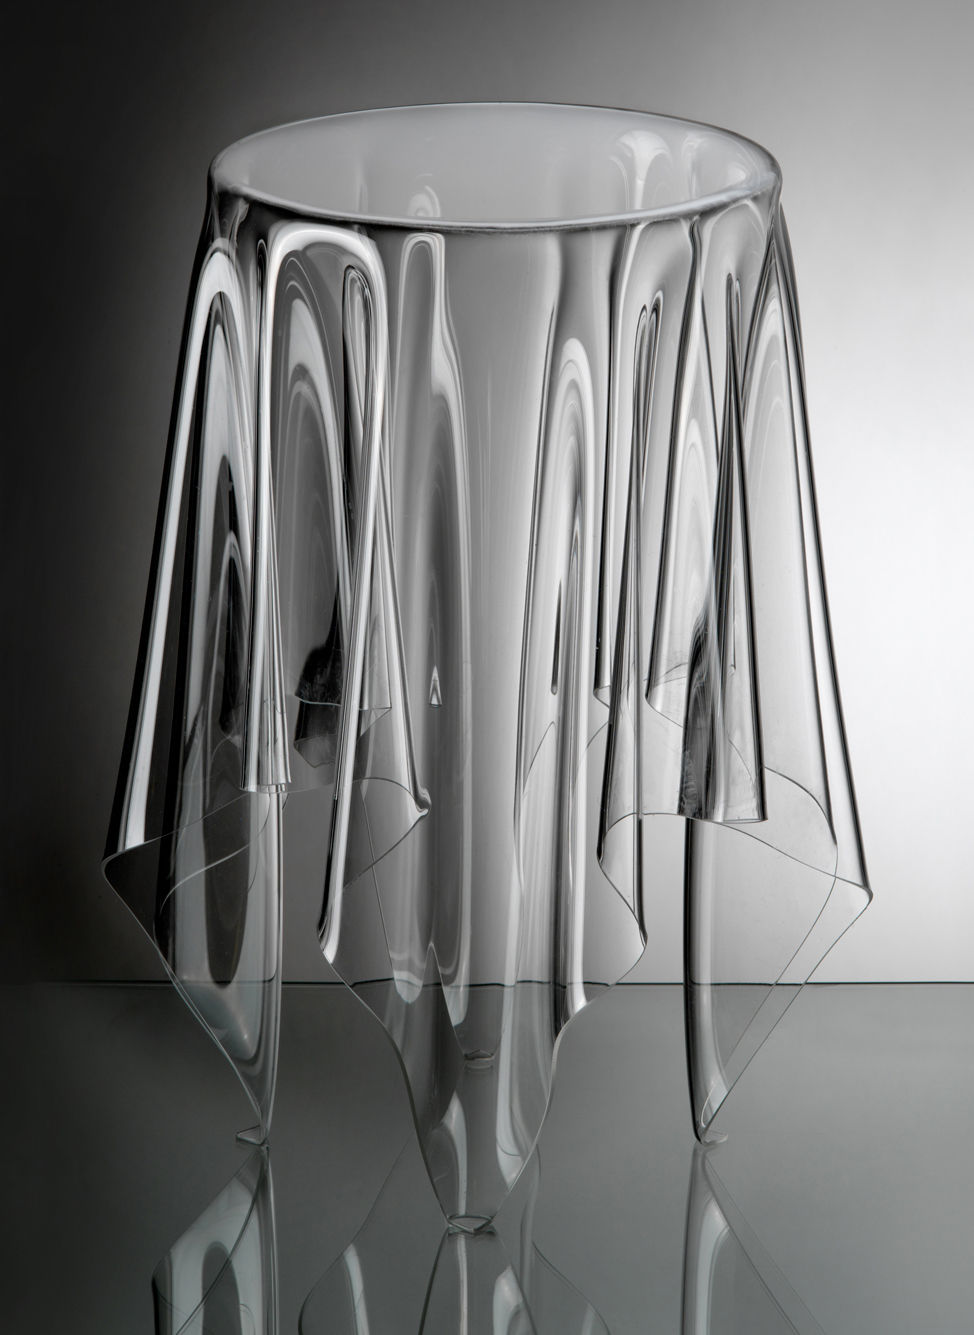 Mobilier - Tables basses - Table basse Tall Illusion / H 56 x Ø 32 cm - Essey - Transparent - Acrylique, PMMA